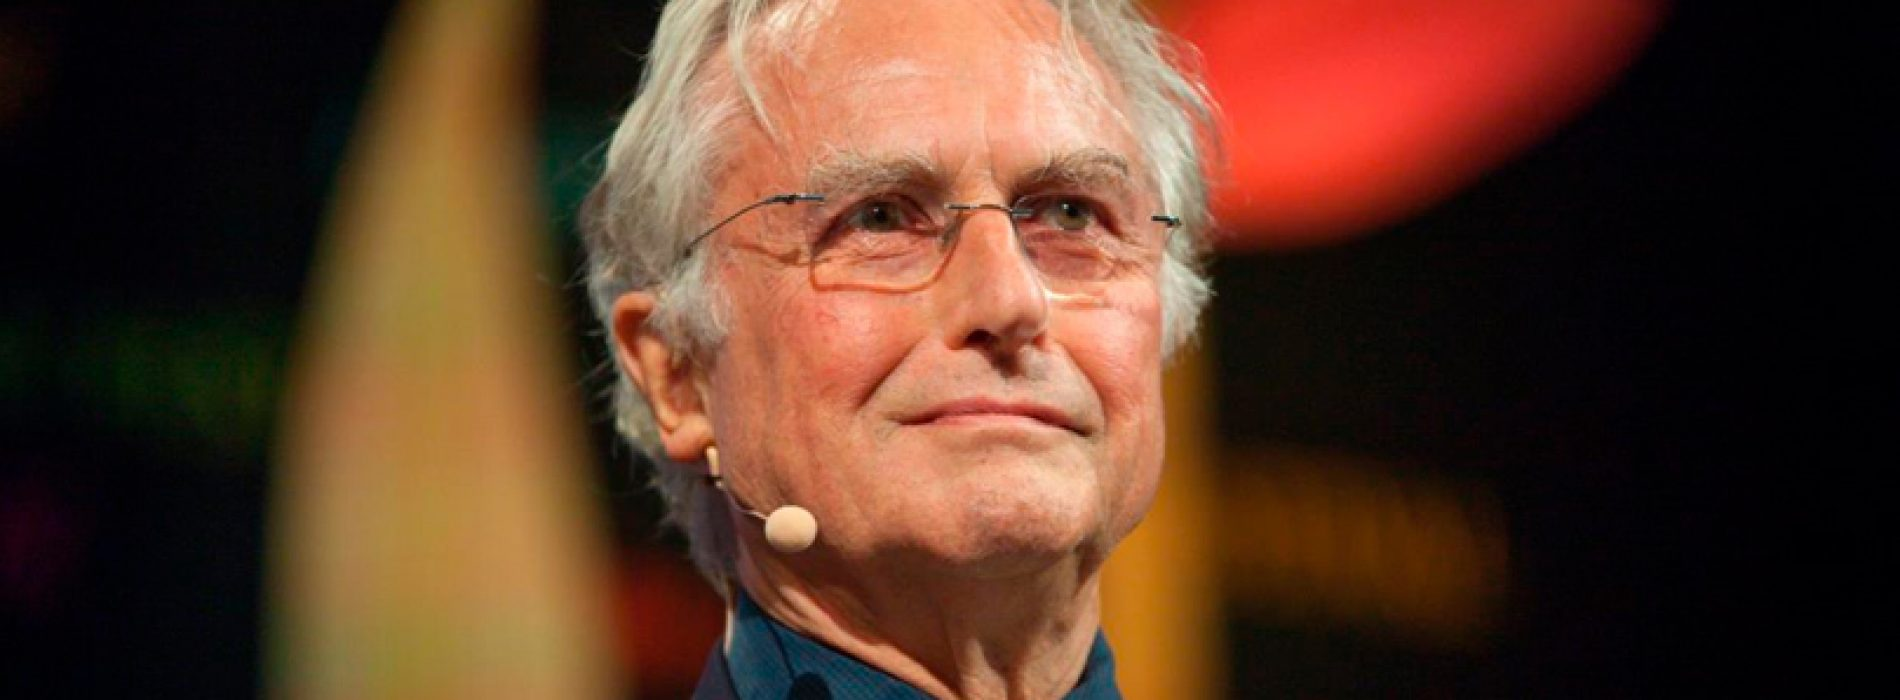 Presentation of the scientist the University of Oxford, Richard Dawkins